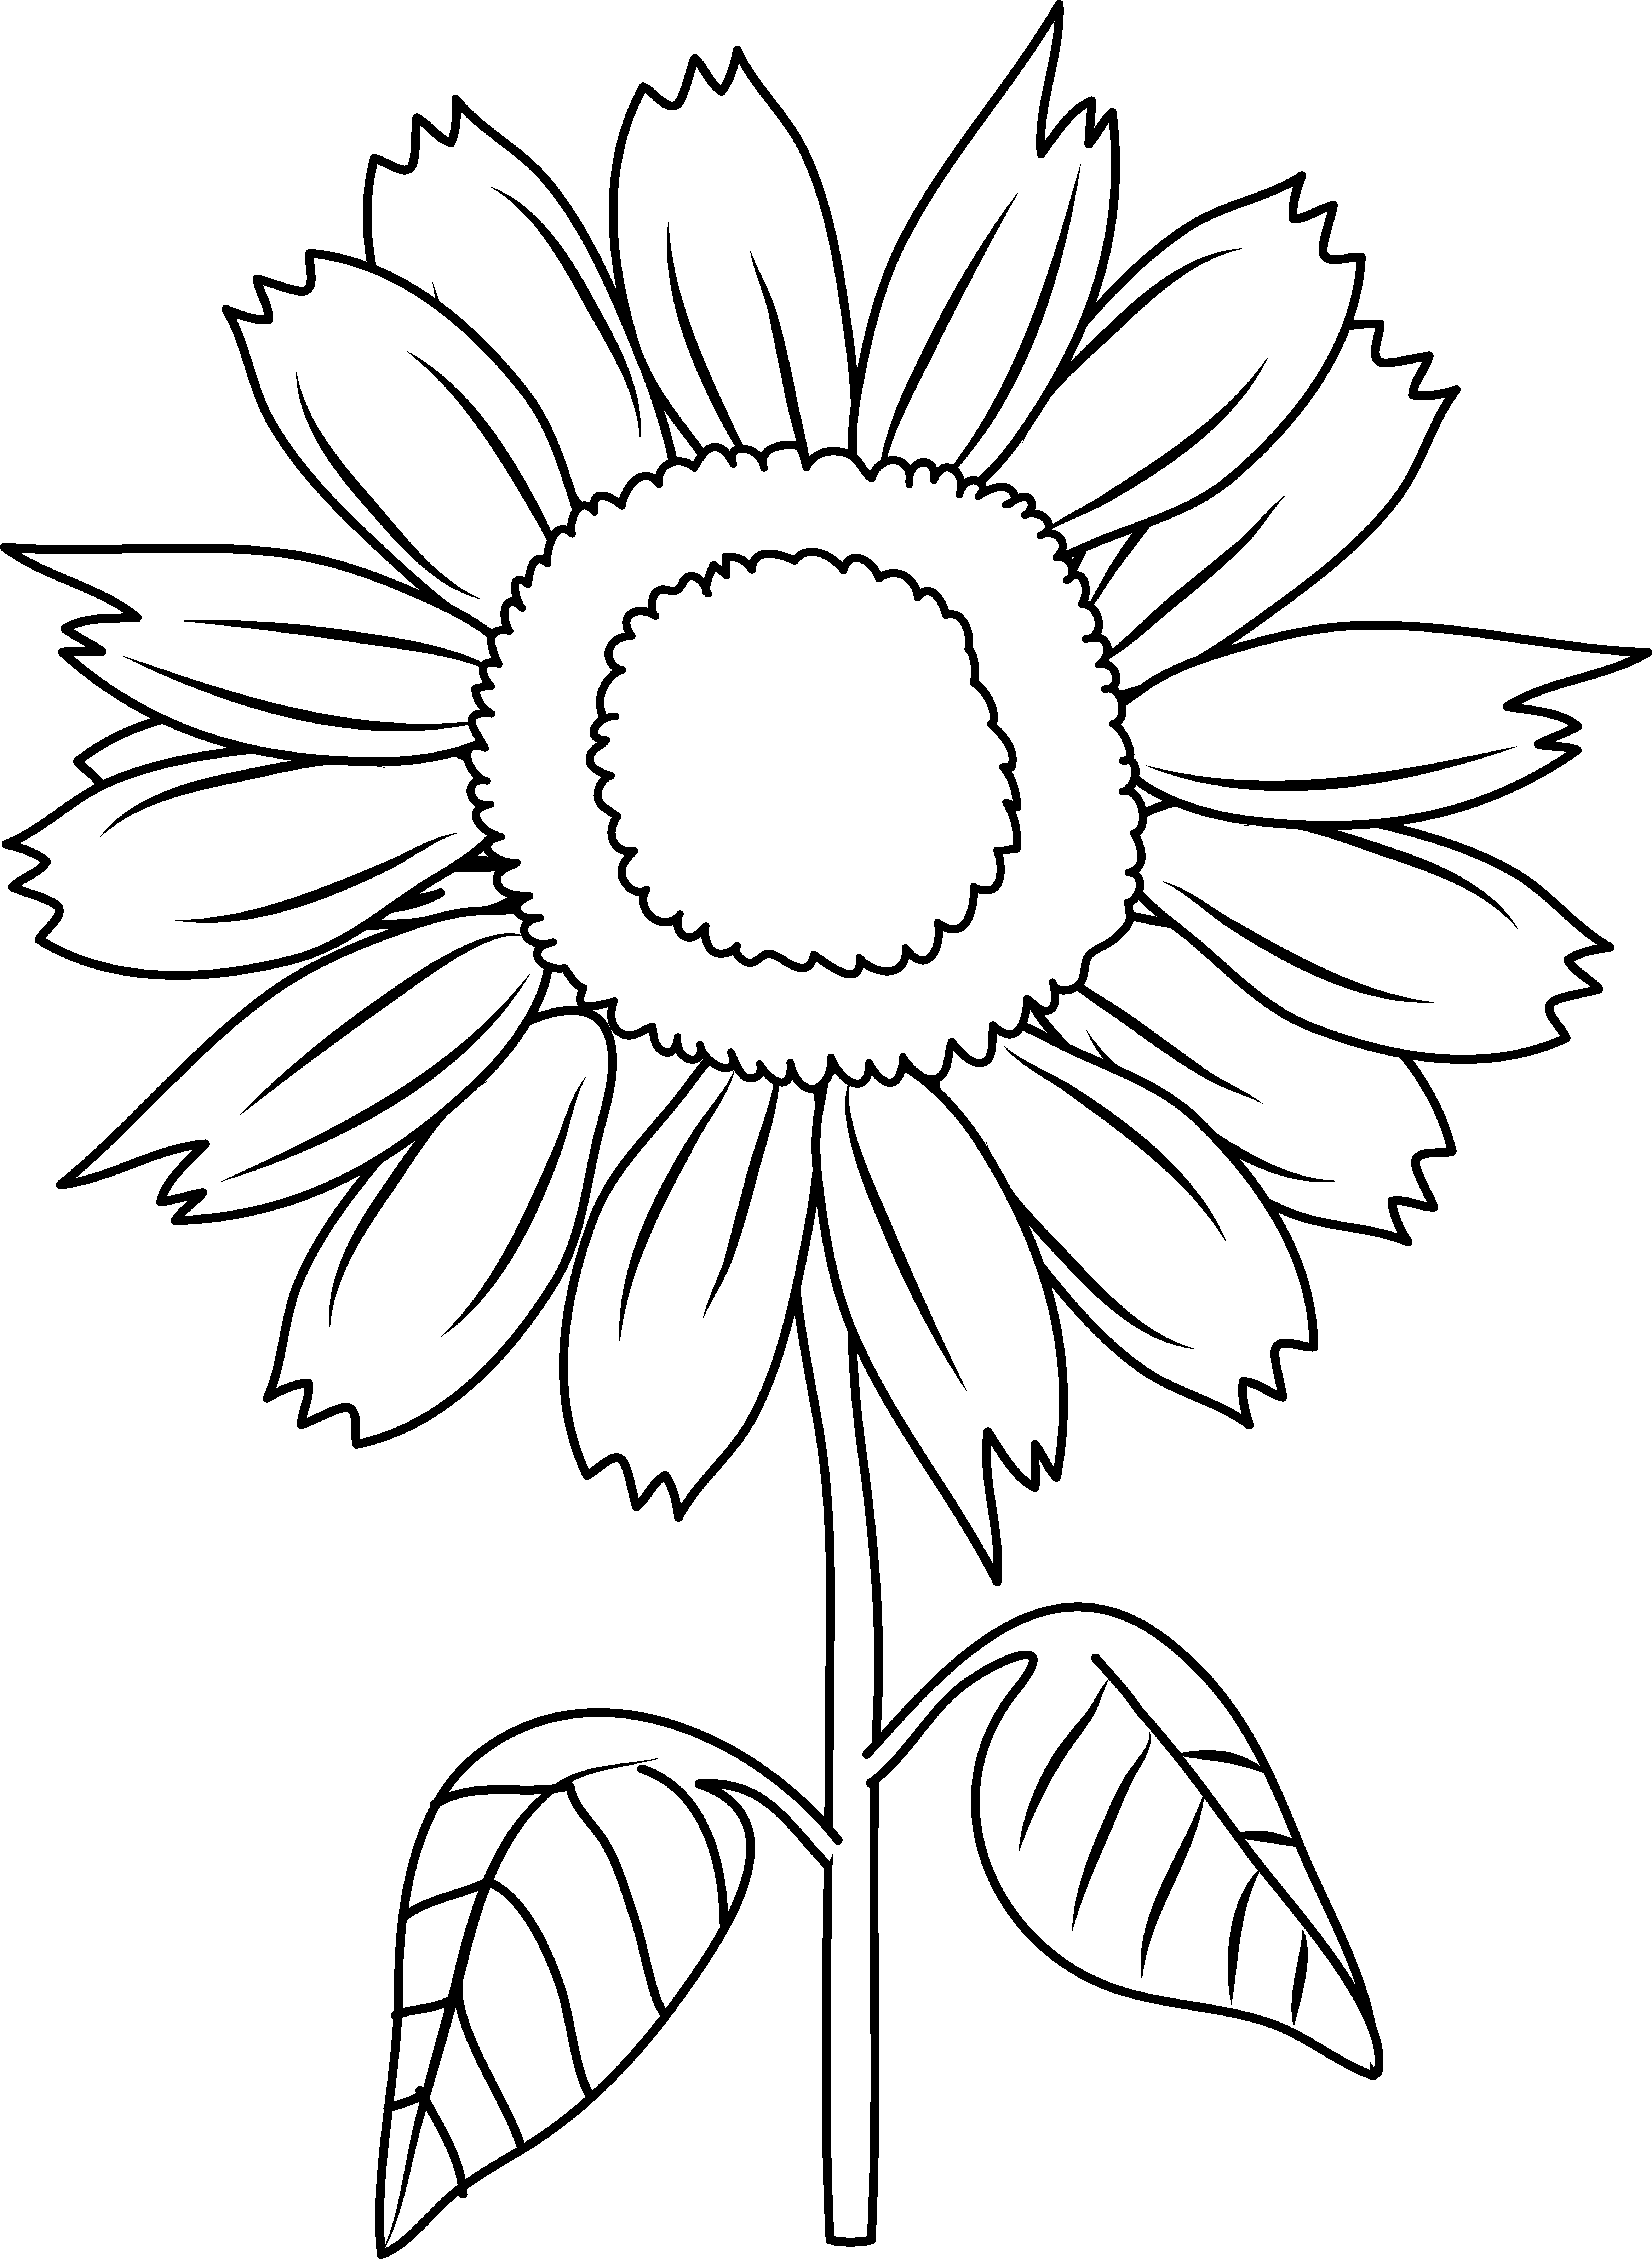 Clipart sun plant black graphic freeuse download Sunflower Black And White Drawing at GetDrawings.com | Free for ... graphic freeuse download